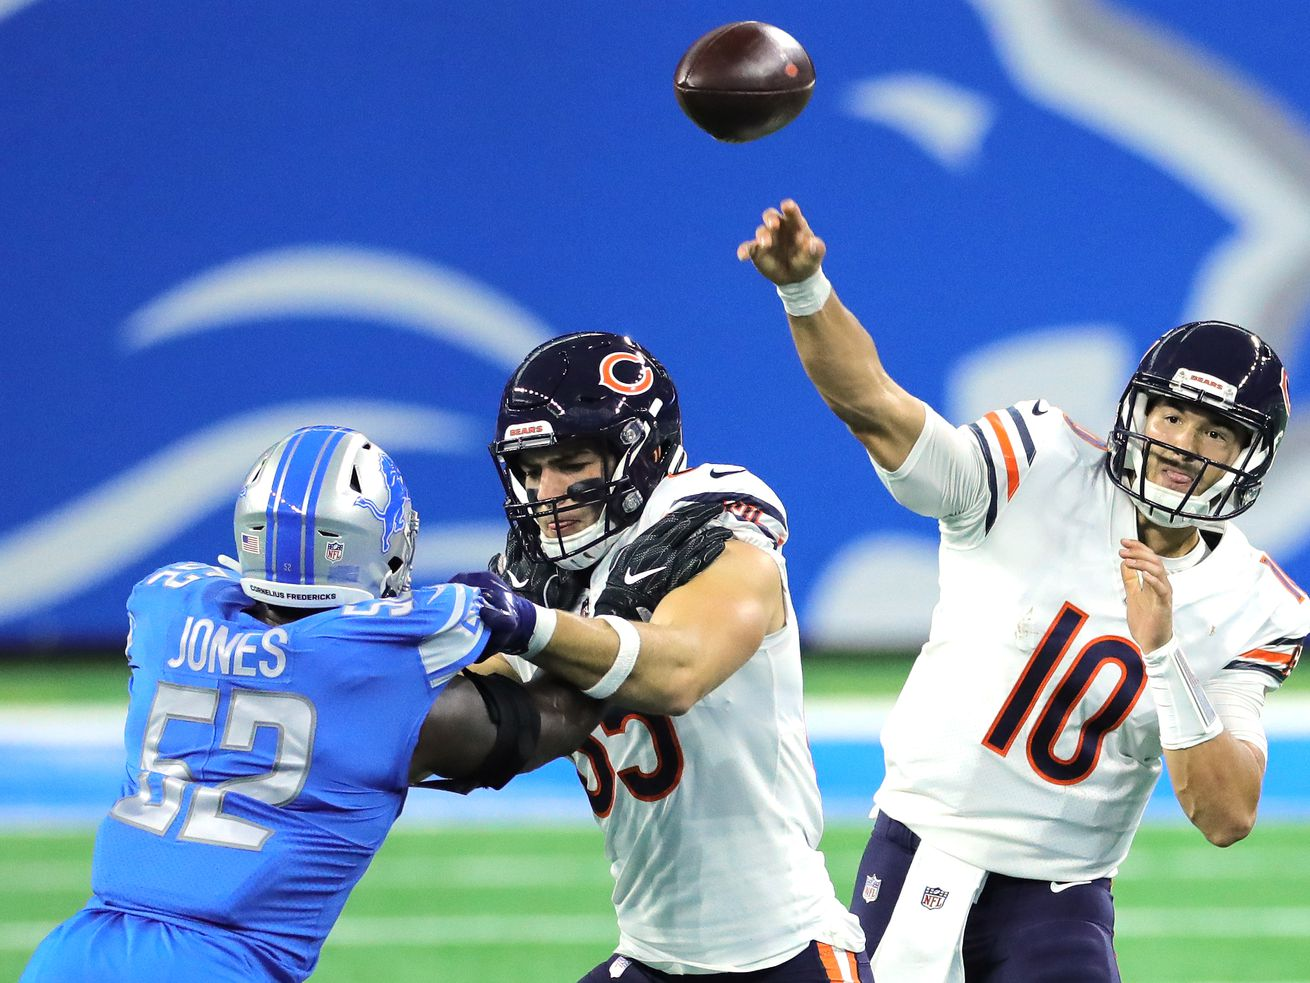 With no fans, Bears feeling at home on the road